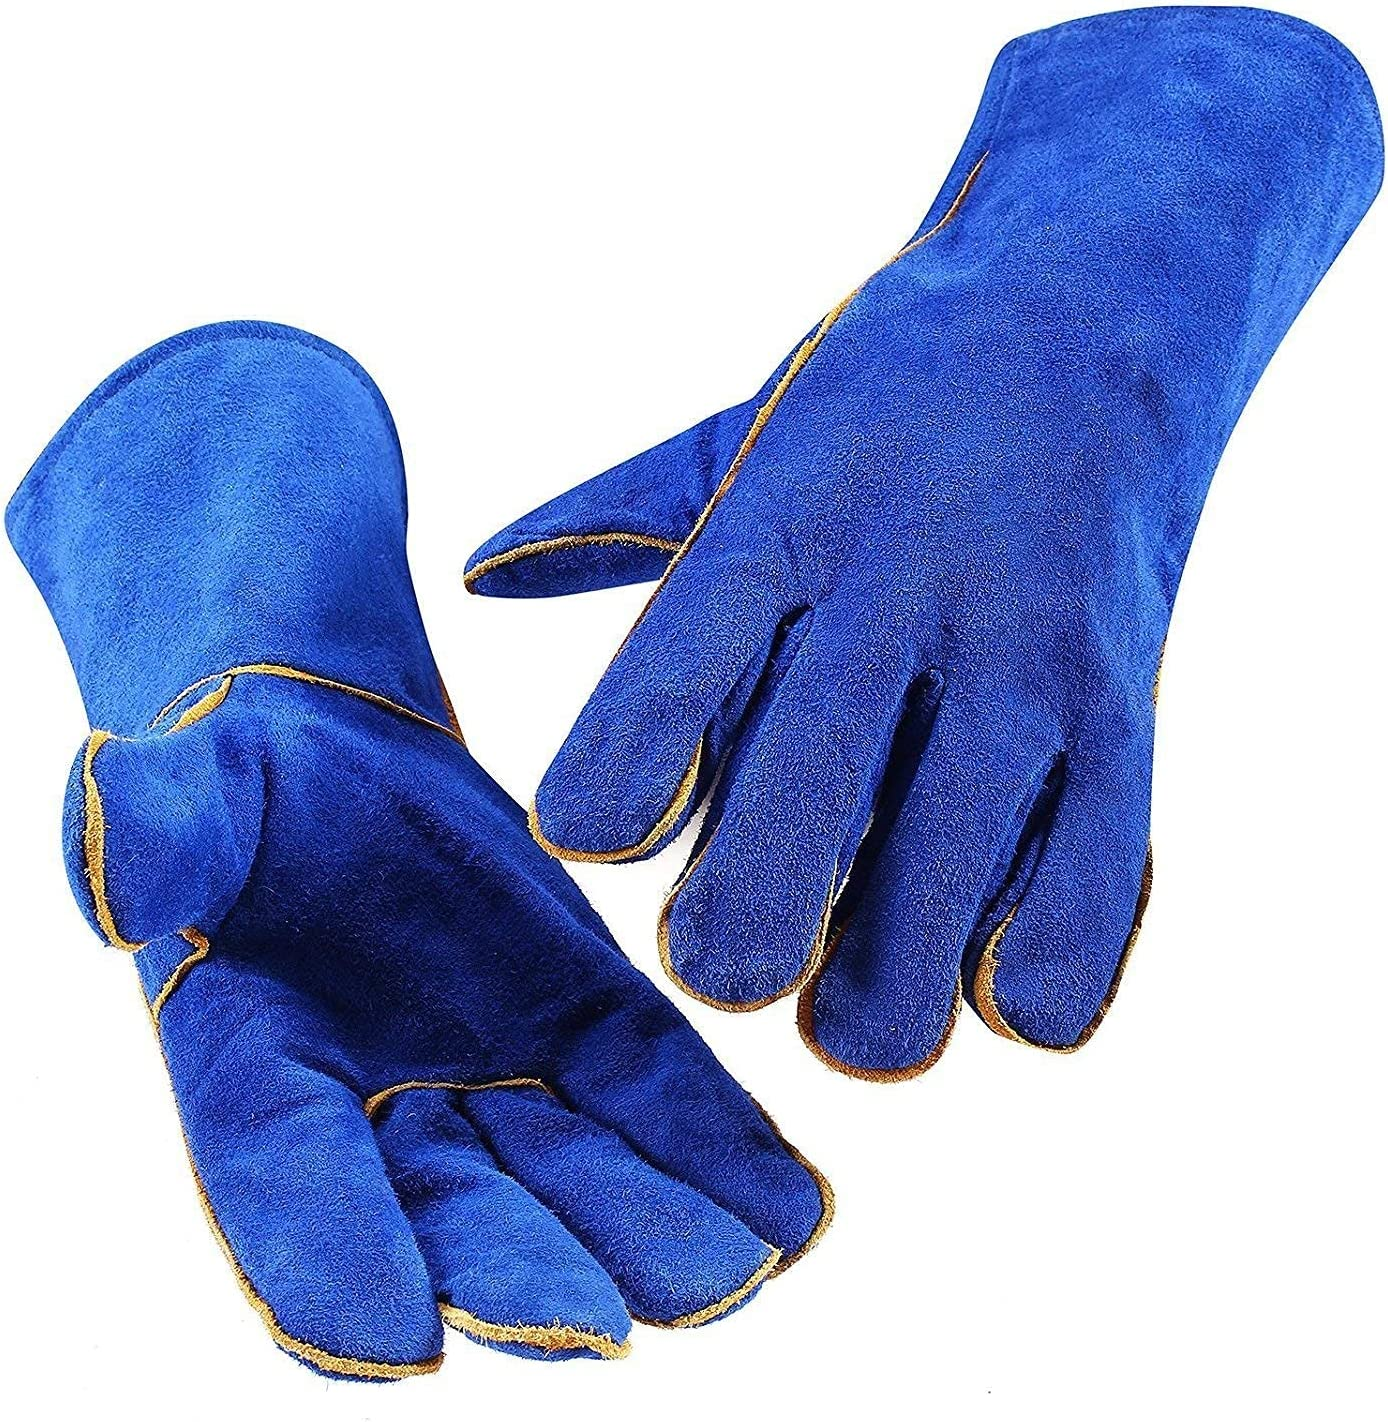 Classic Leather Forge Welding Cheap bargain Great interest Fire Safe Durable Gloves Non-Slip